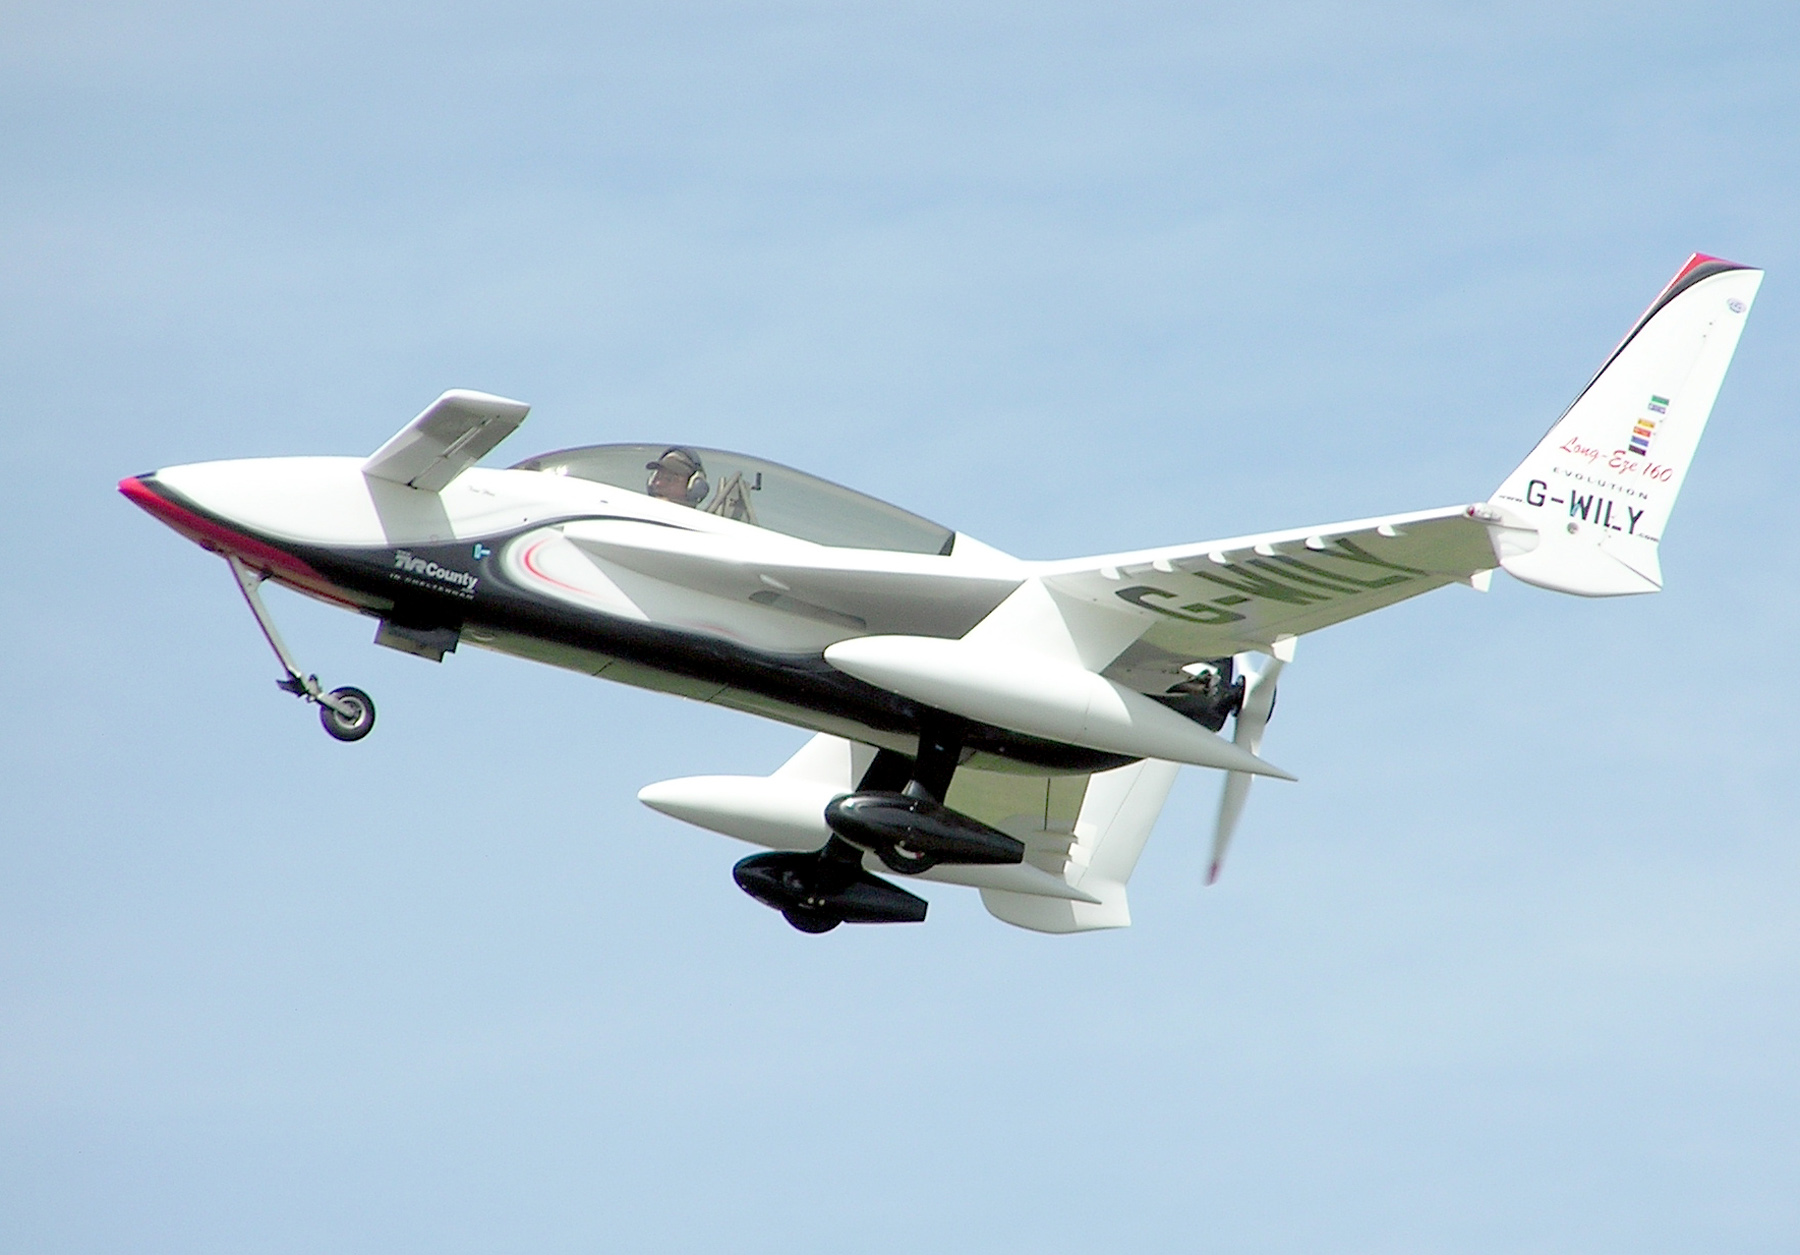 Long EZ aircraft similar to what Denver was flying Photo: wiki